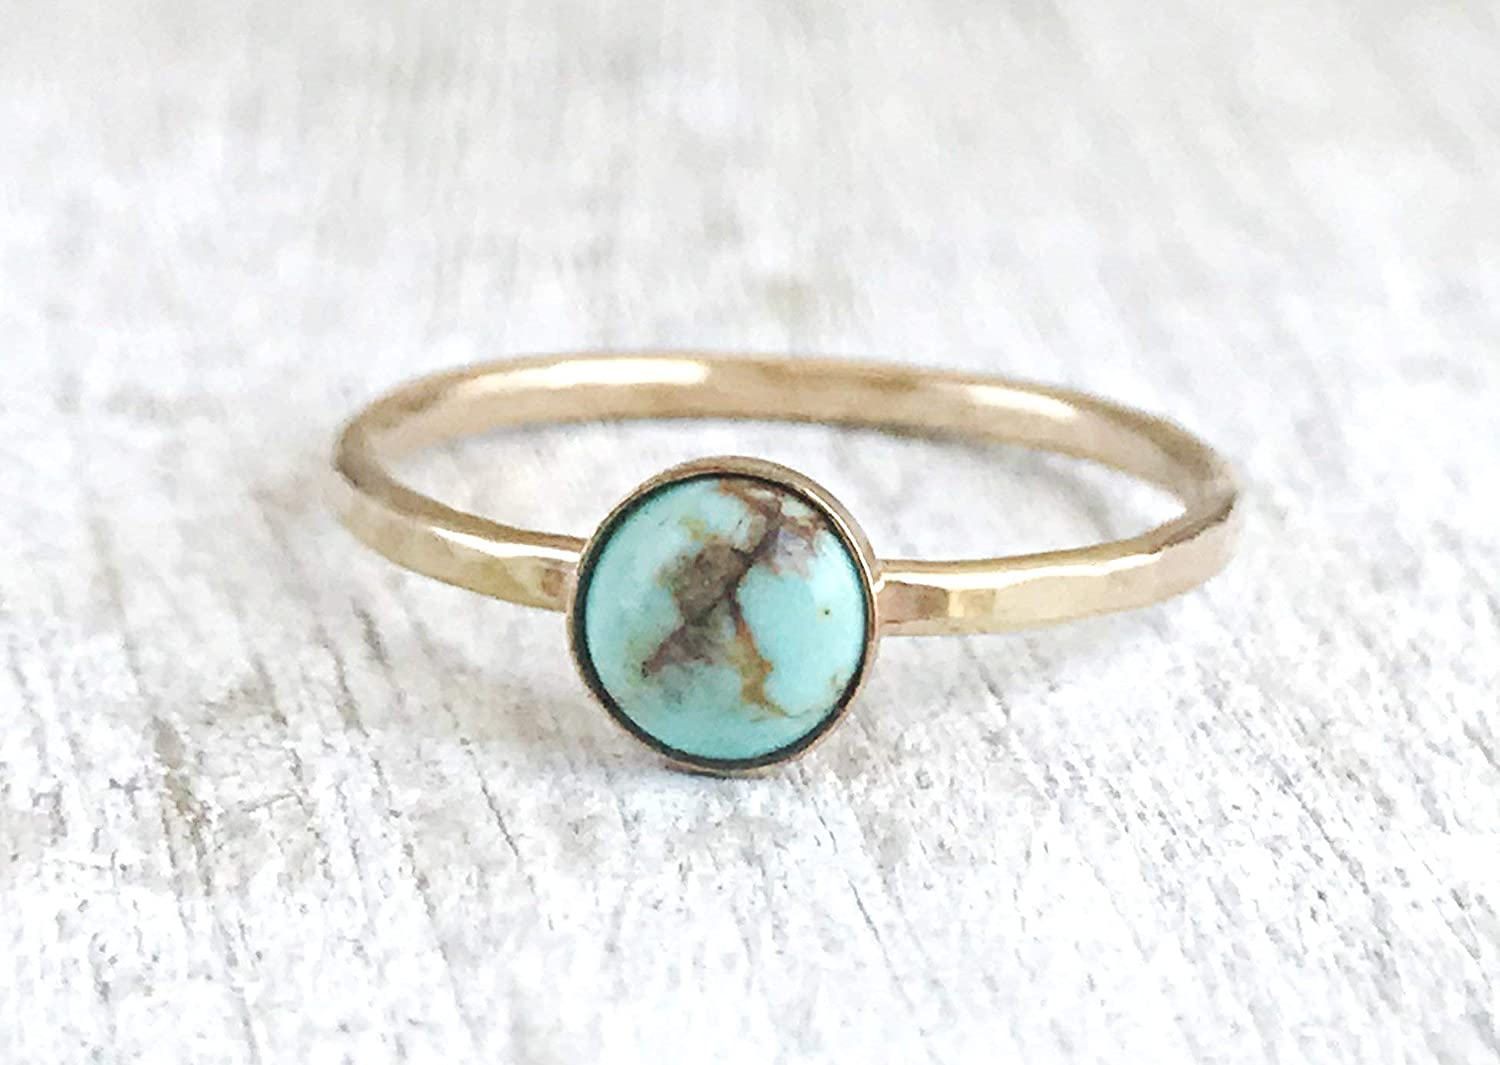 Dainty Ring Minimal Jewelry for women Hammered Ring Gift for Her Gold Turquoise Ring Turquoise Jewelry